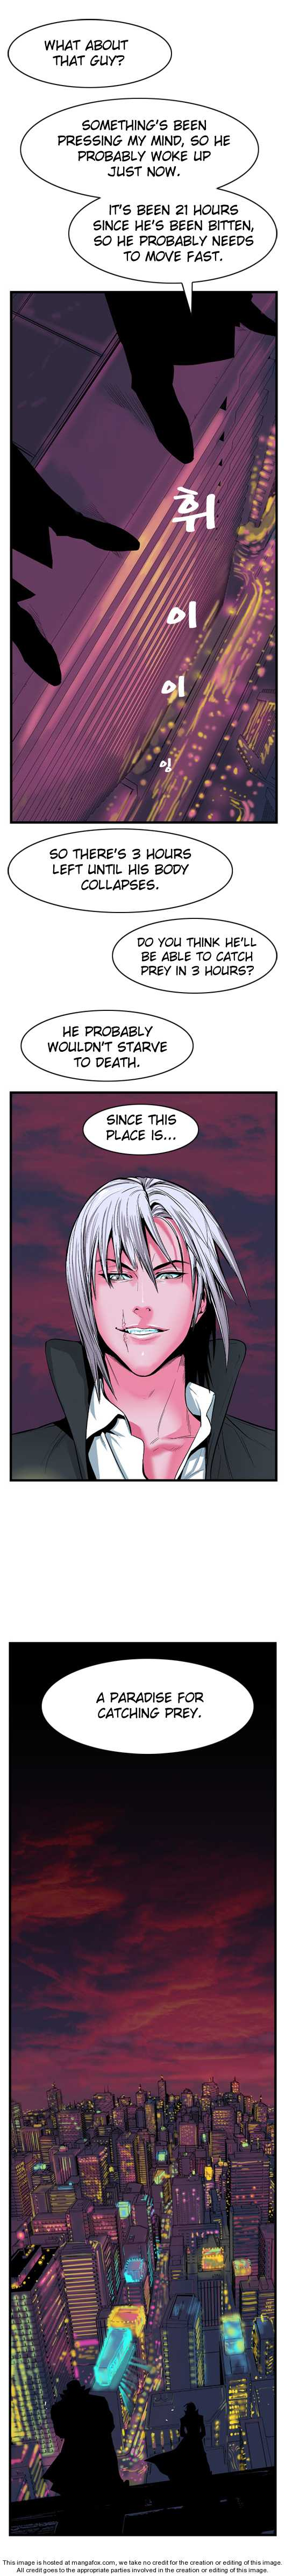 Noblesse 13 Page 2